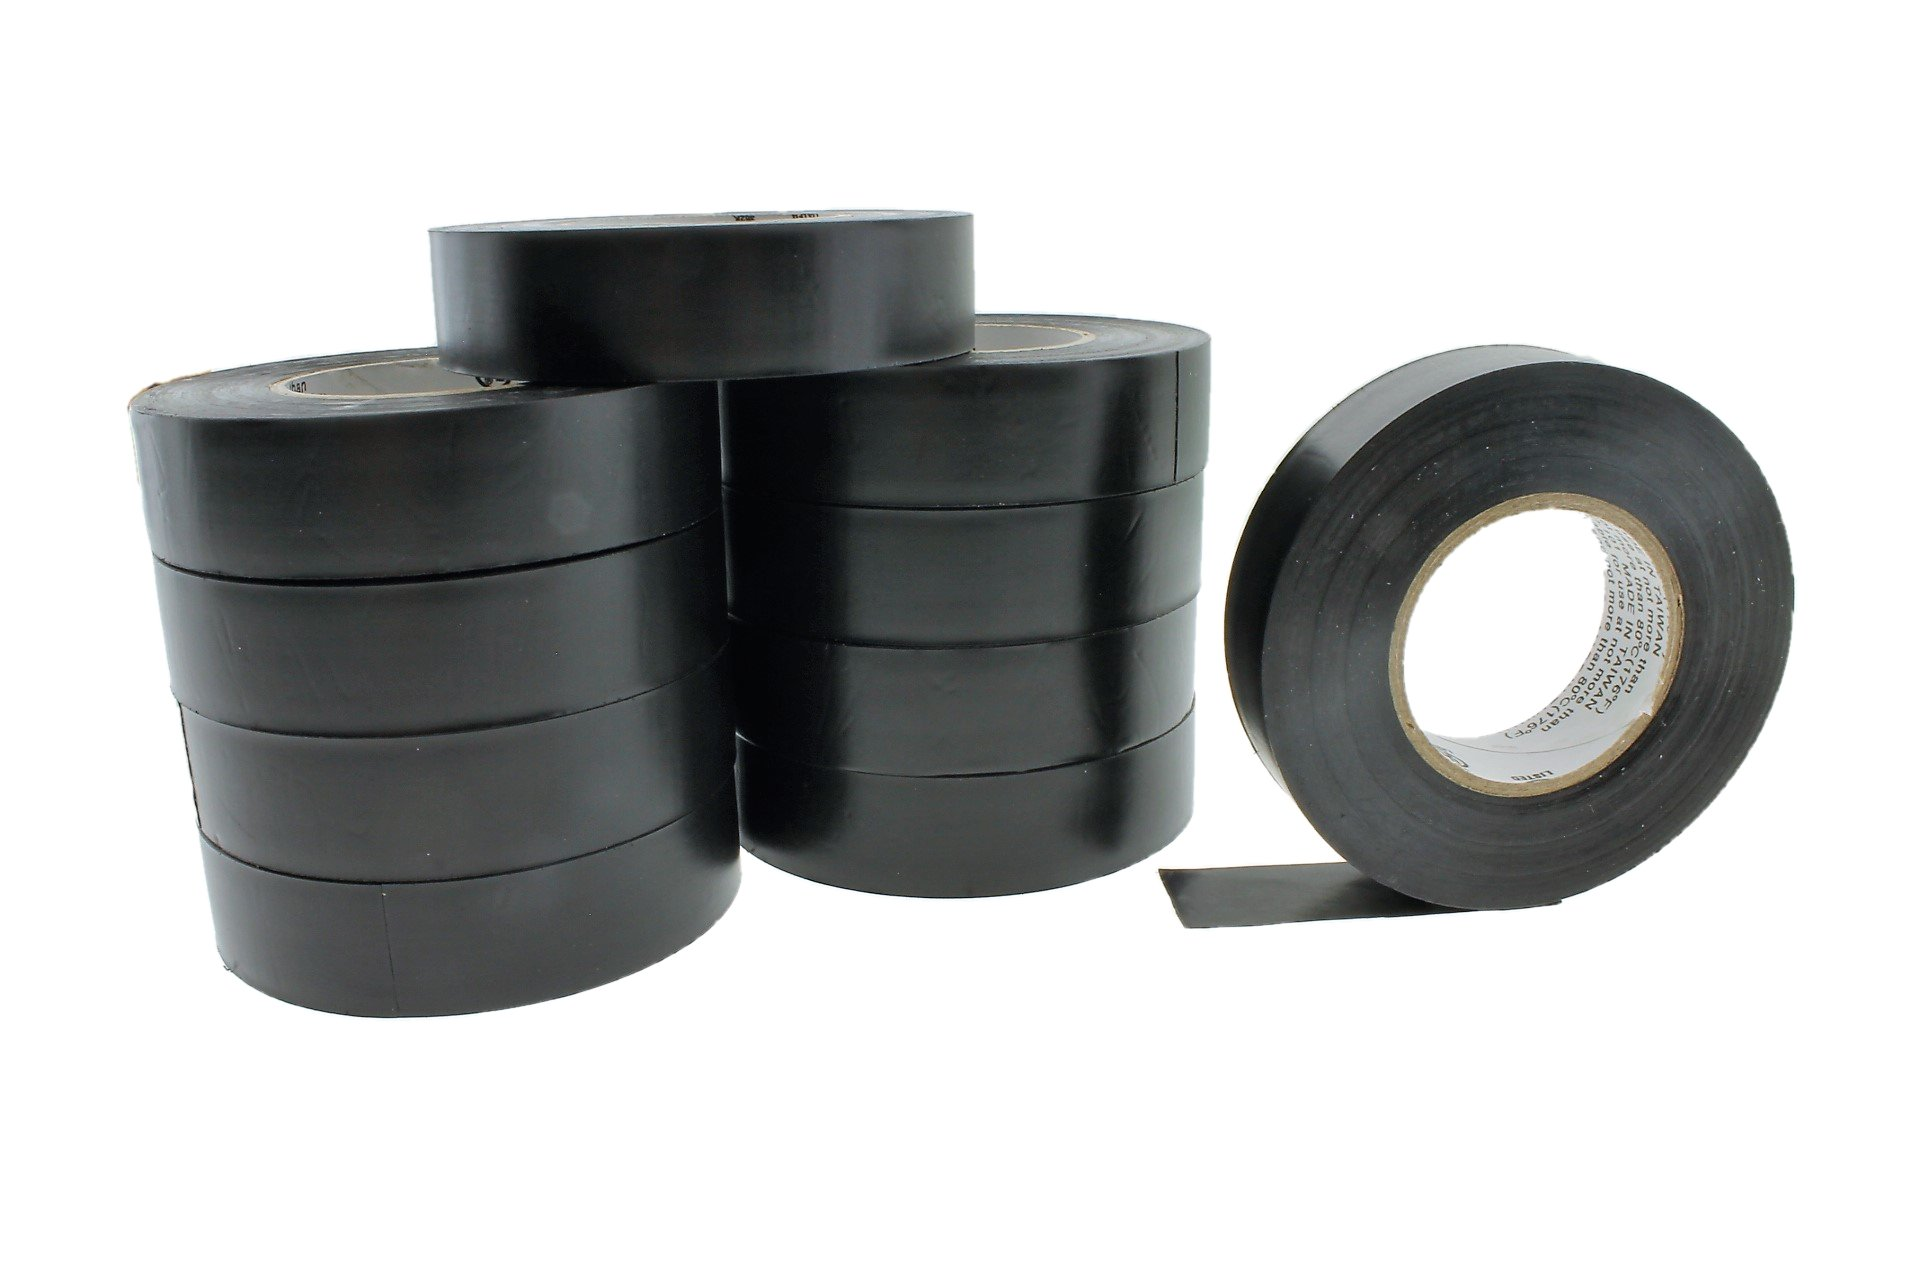 10pk 3/4'' BLACK UL Listed 600v Electrical Tape Supreme Durable .75 Pro-Grade Wire harness PVC Vinyl Marking Labeling Coding Warning Safety Flame Retardant 60' 7 mil